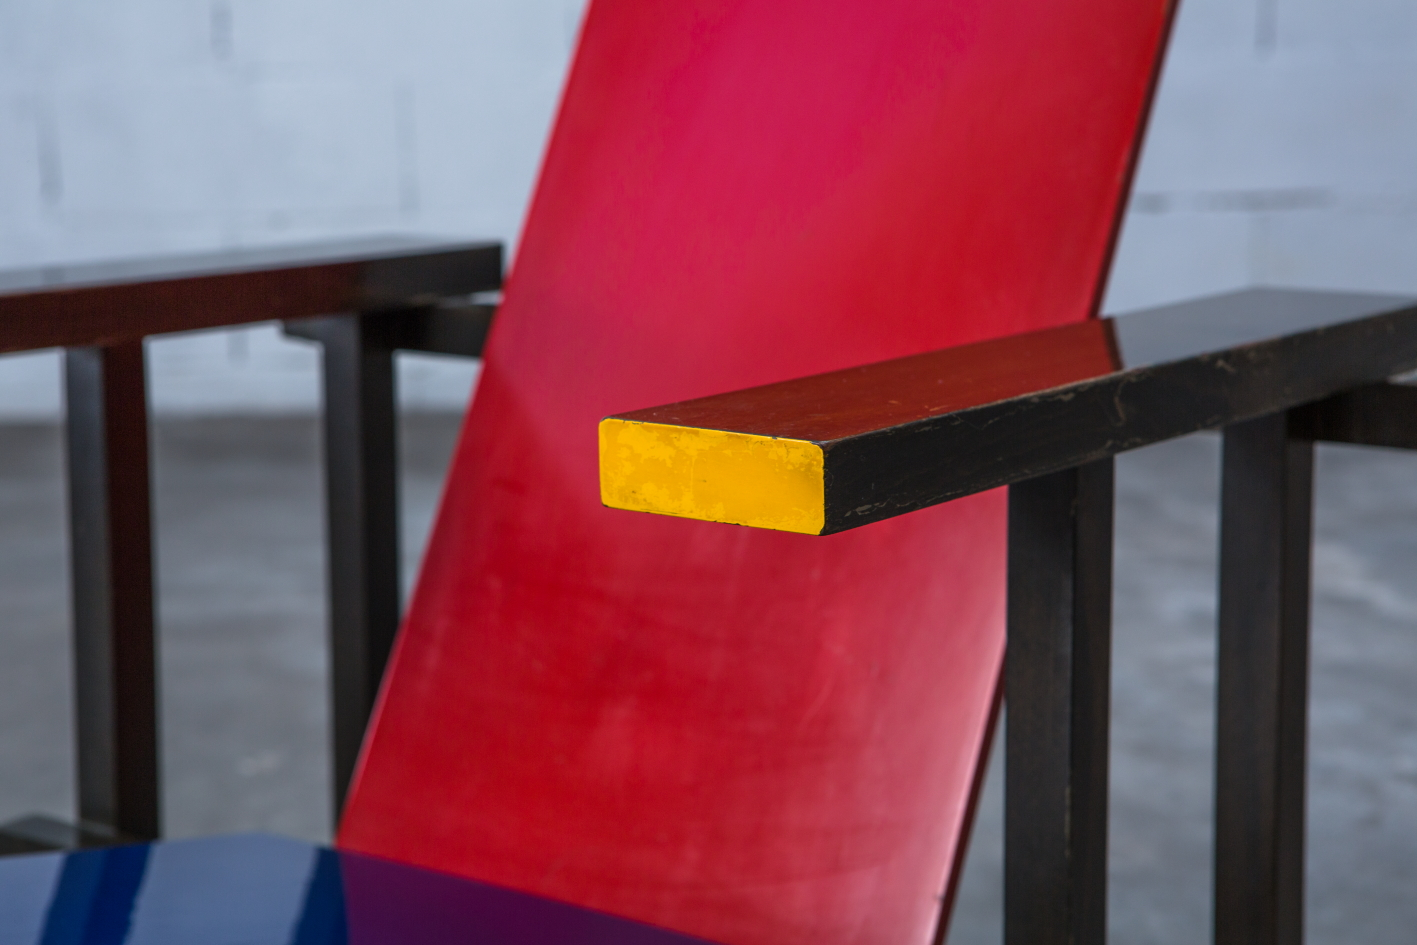 Early Red & Blue chair - Gerrit Rietveld for Cassina signed n.23 - Arm detail